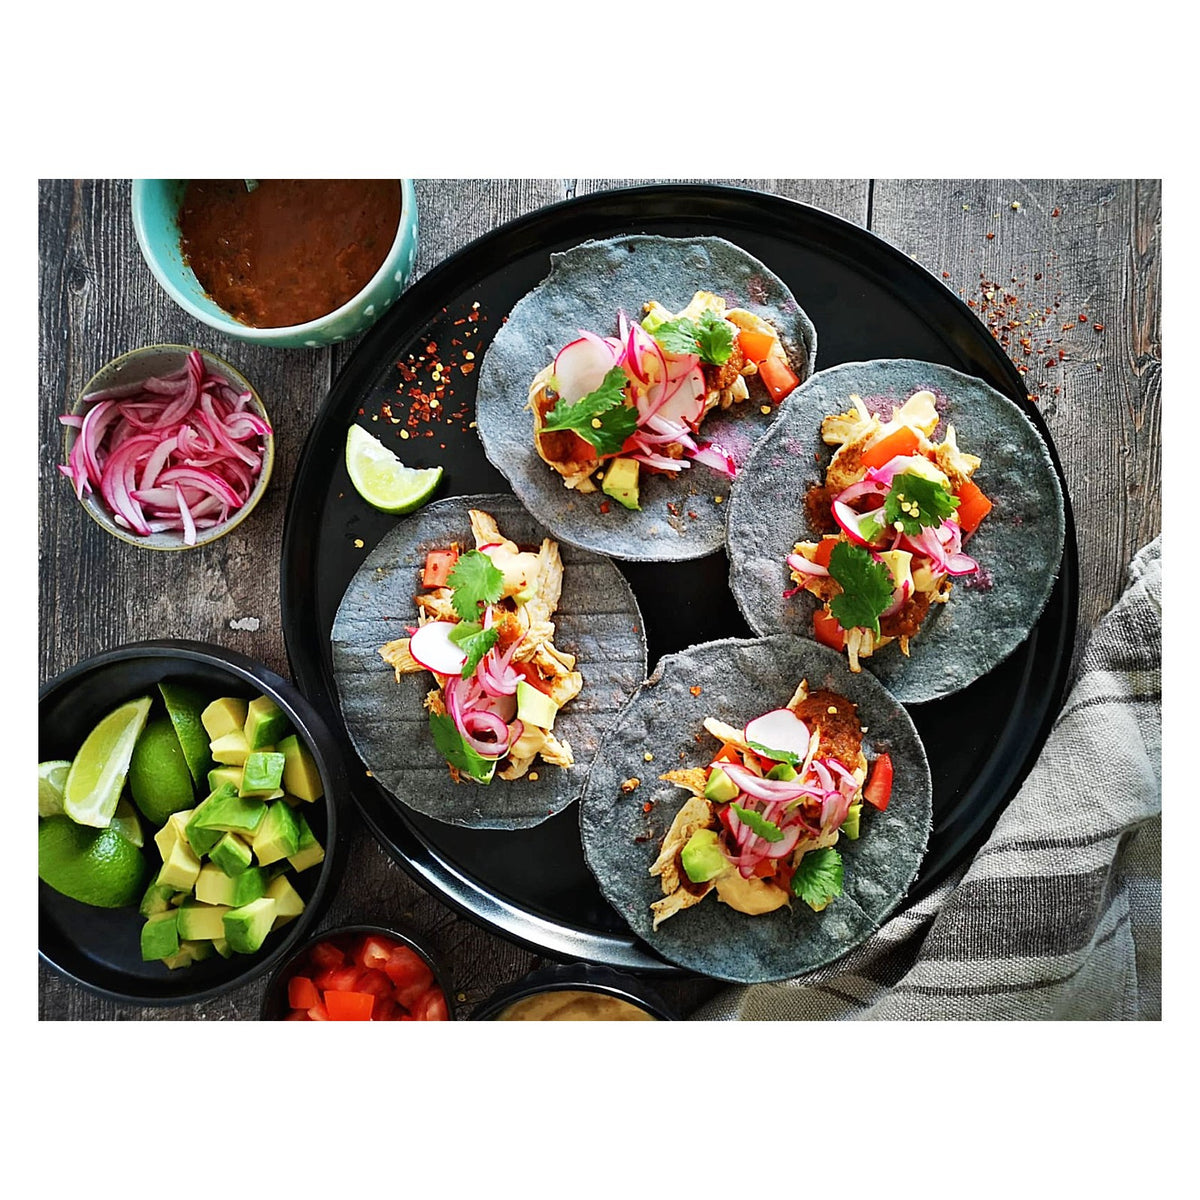 Ancho Chicken Tacos, Smokey Chipotle Salsa, Pico De Galo, Avocado, Pickled Red Onion & Chipotle Crema